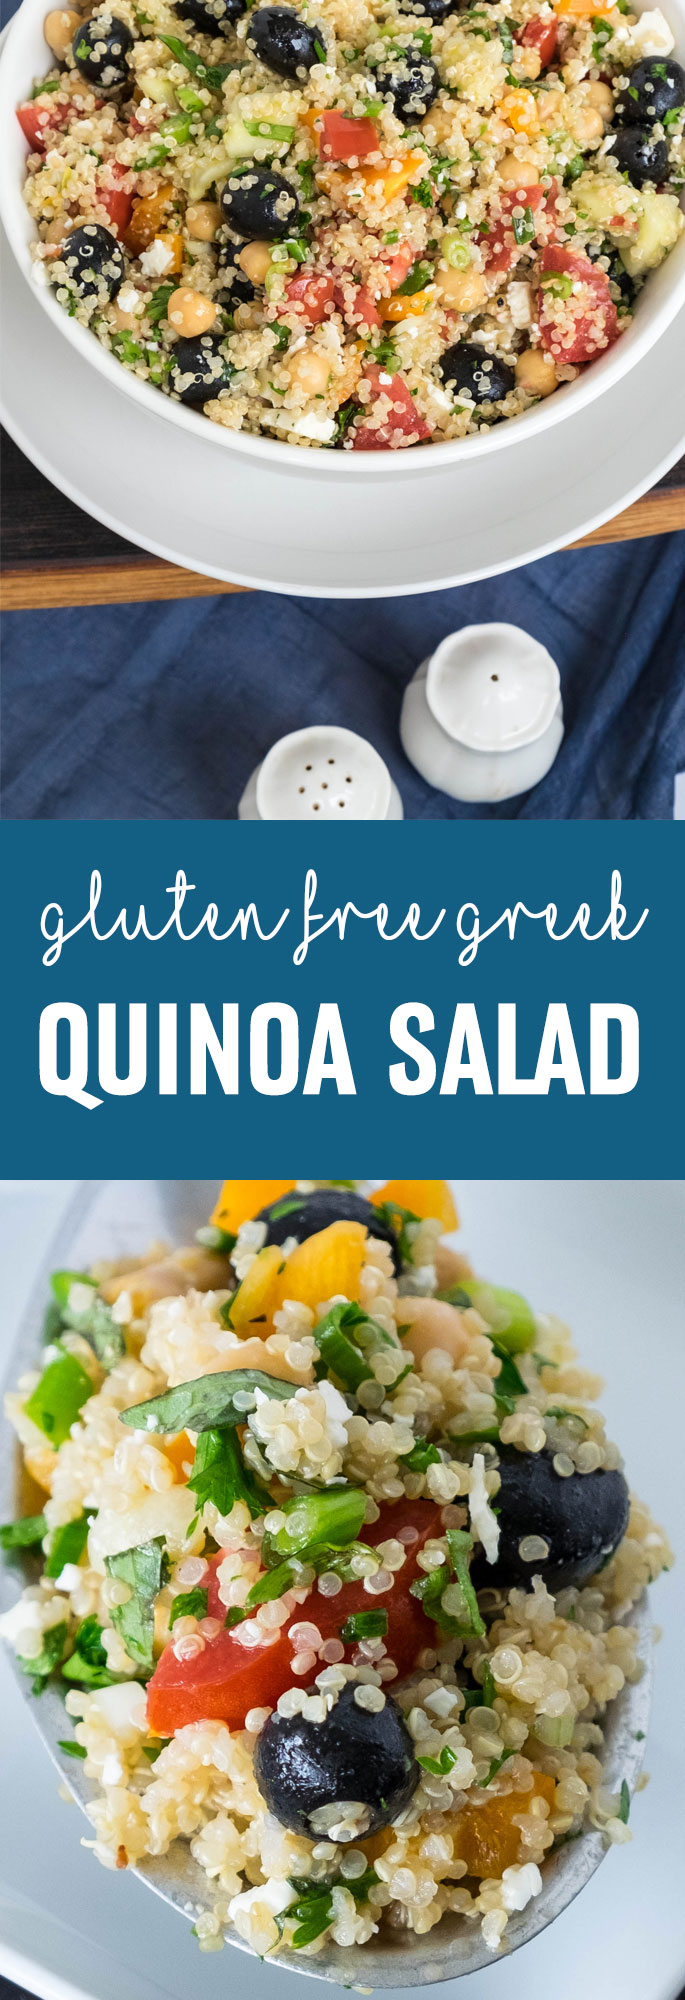 This salad is another wonderful example of how super-healthy quinoa can be tasty and bursting with intense flavors. Shared via http://www.gluteninsight.com